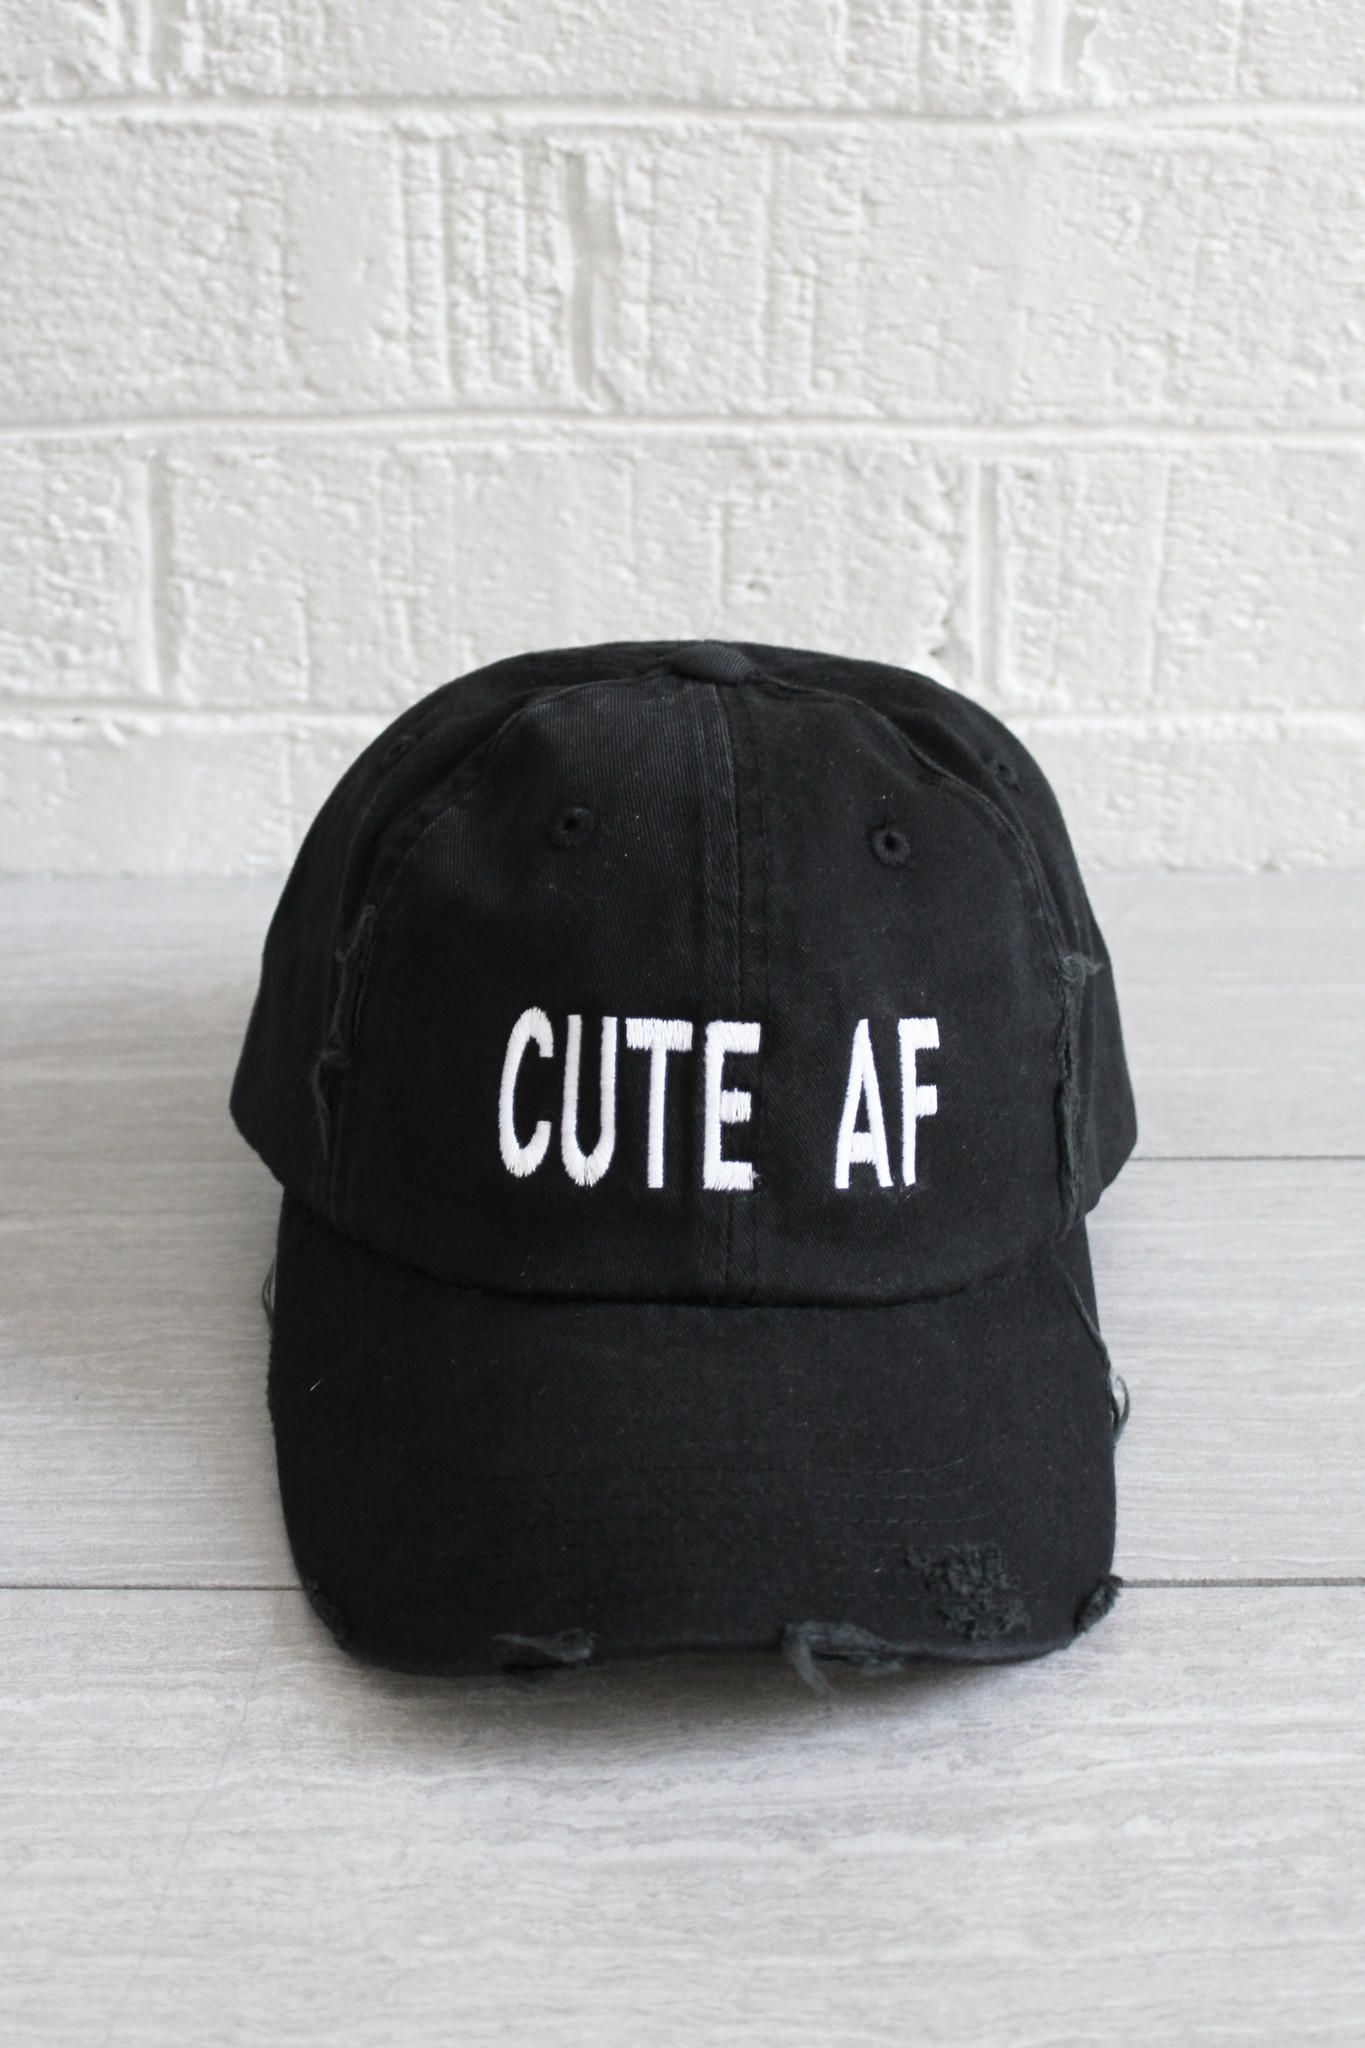 d9c42731bc3 Cute AF Hat from Jawbreaking. Saved to New Arrivals. Shop more products  from Jawbreaking on Wanelo.